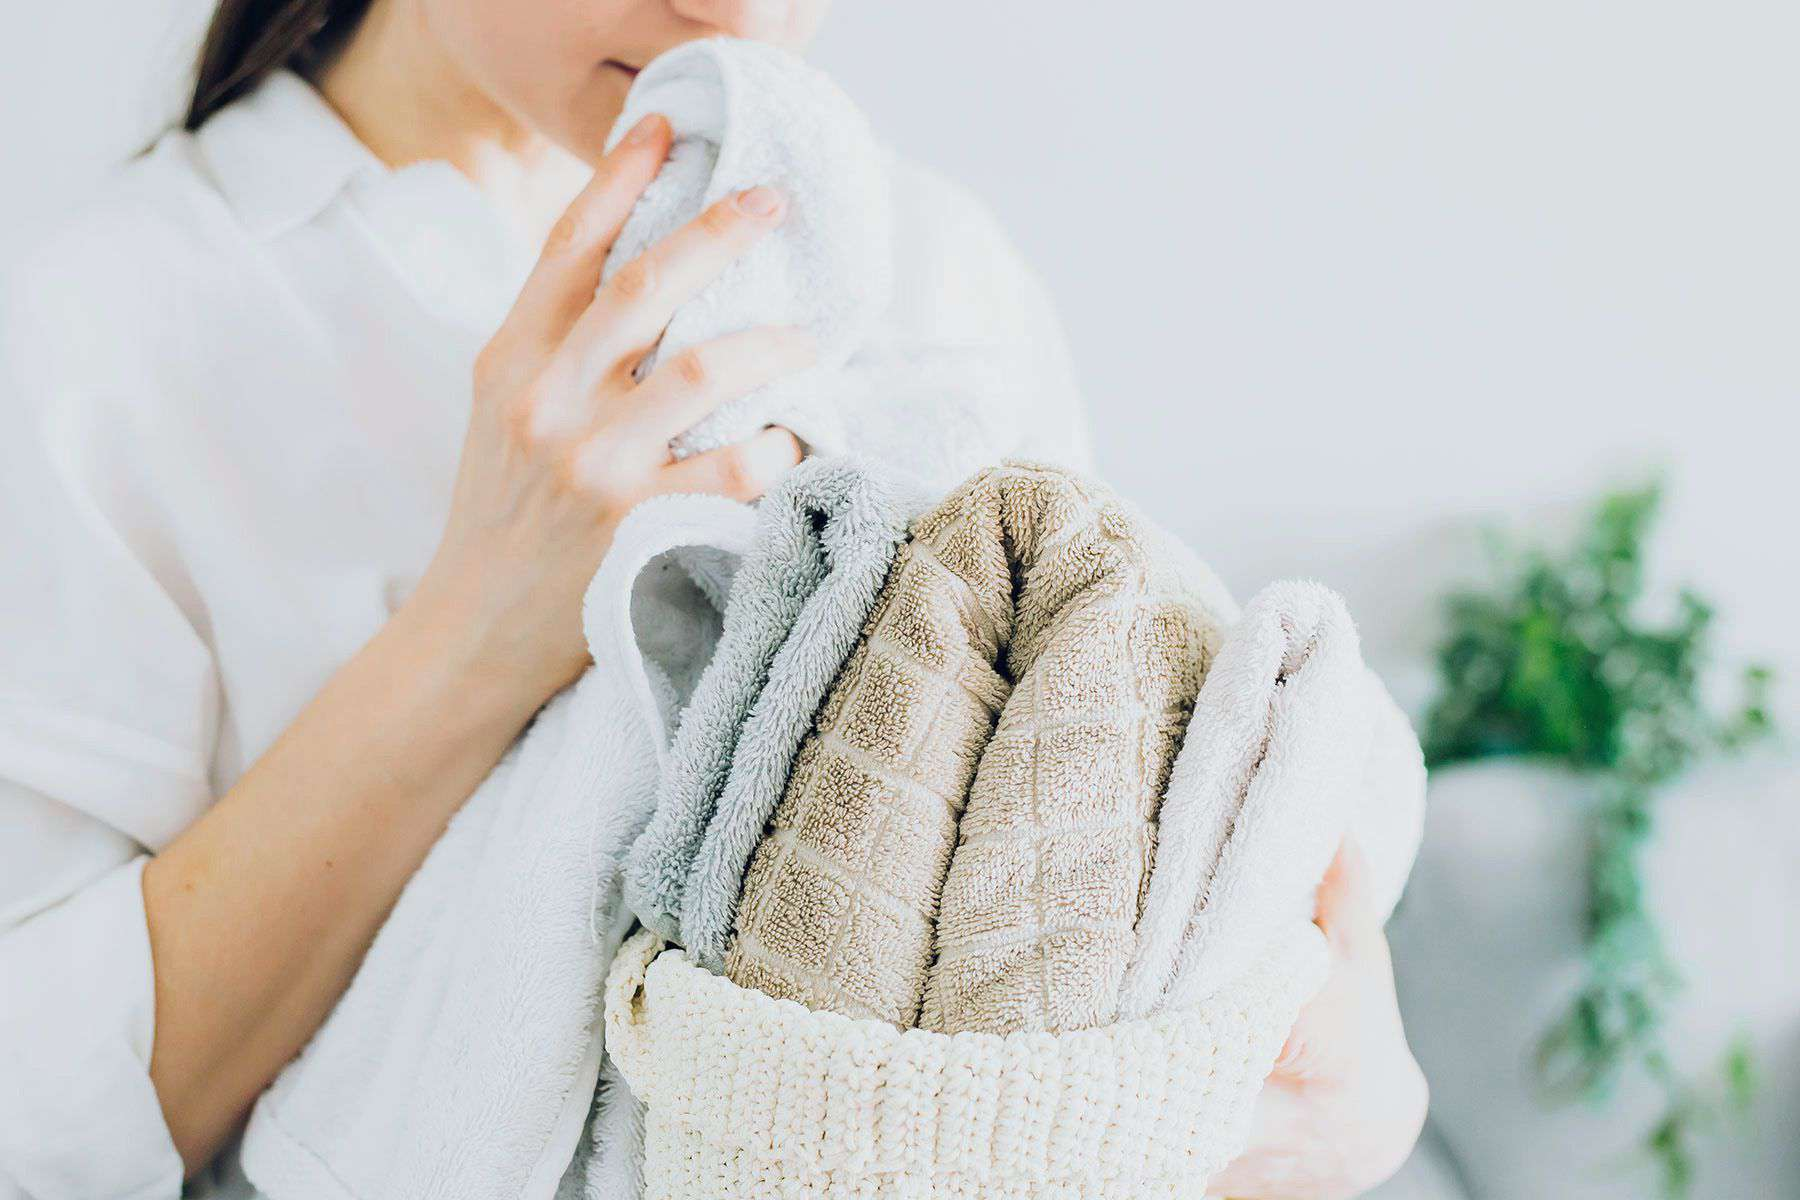 Folded towels in woven holder being smelled